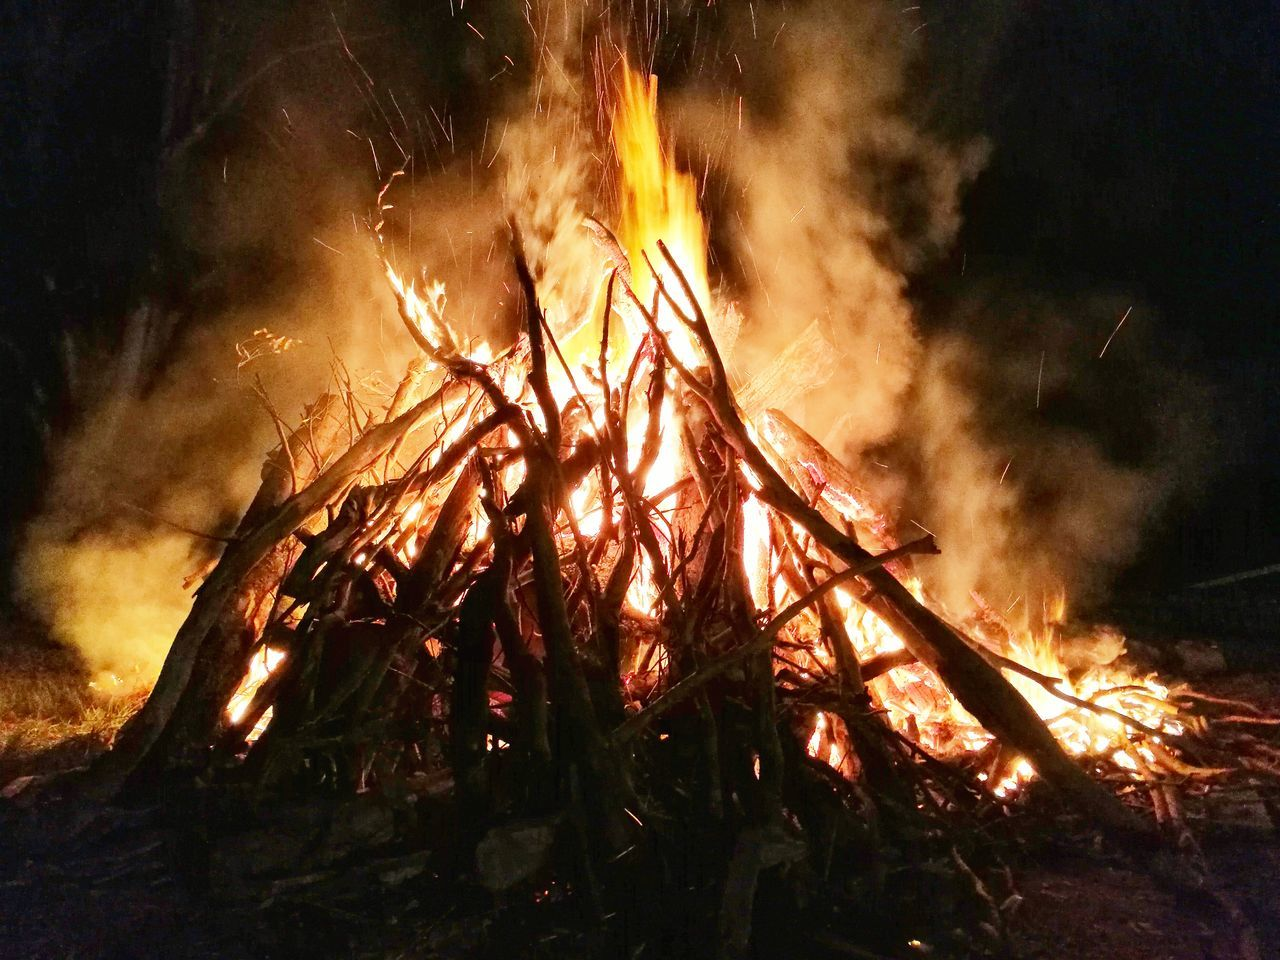 burning, flame, heat - temperature, danger, night, smoke - physical structure, forest fire, outdoors, no people, nature, accidents and disasters, bonfire, global warming, close-up, sky